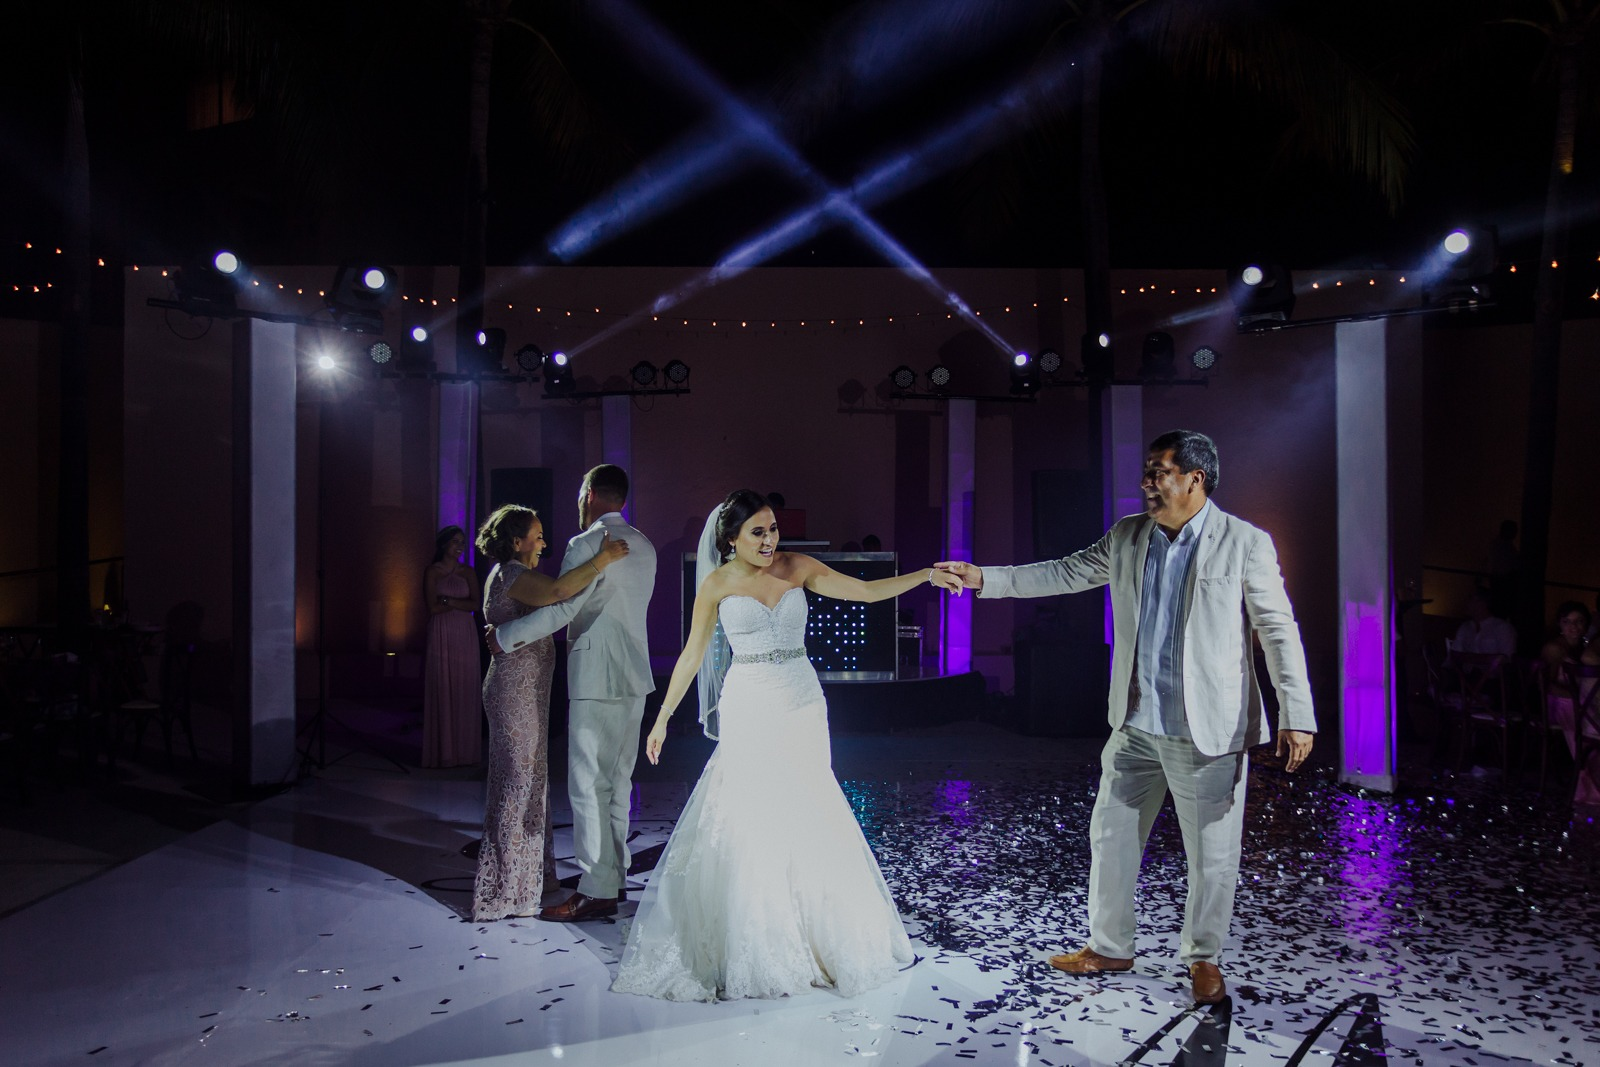 dance-bride-dad-dancefloor-groom-light-moment-wedding